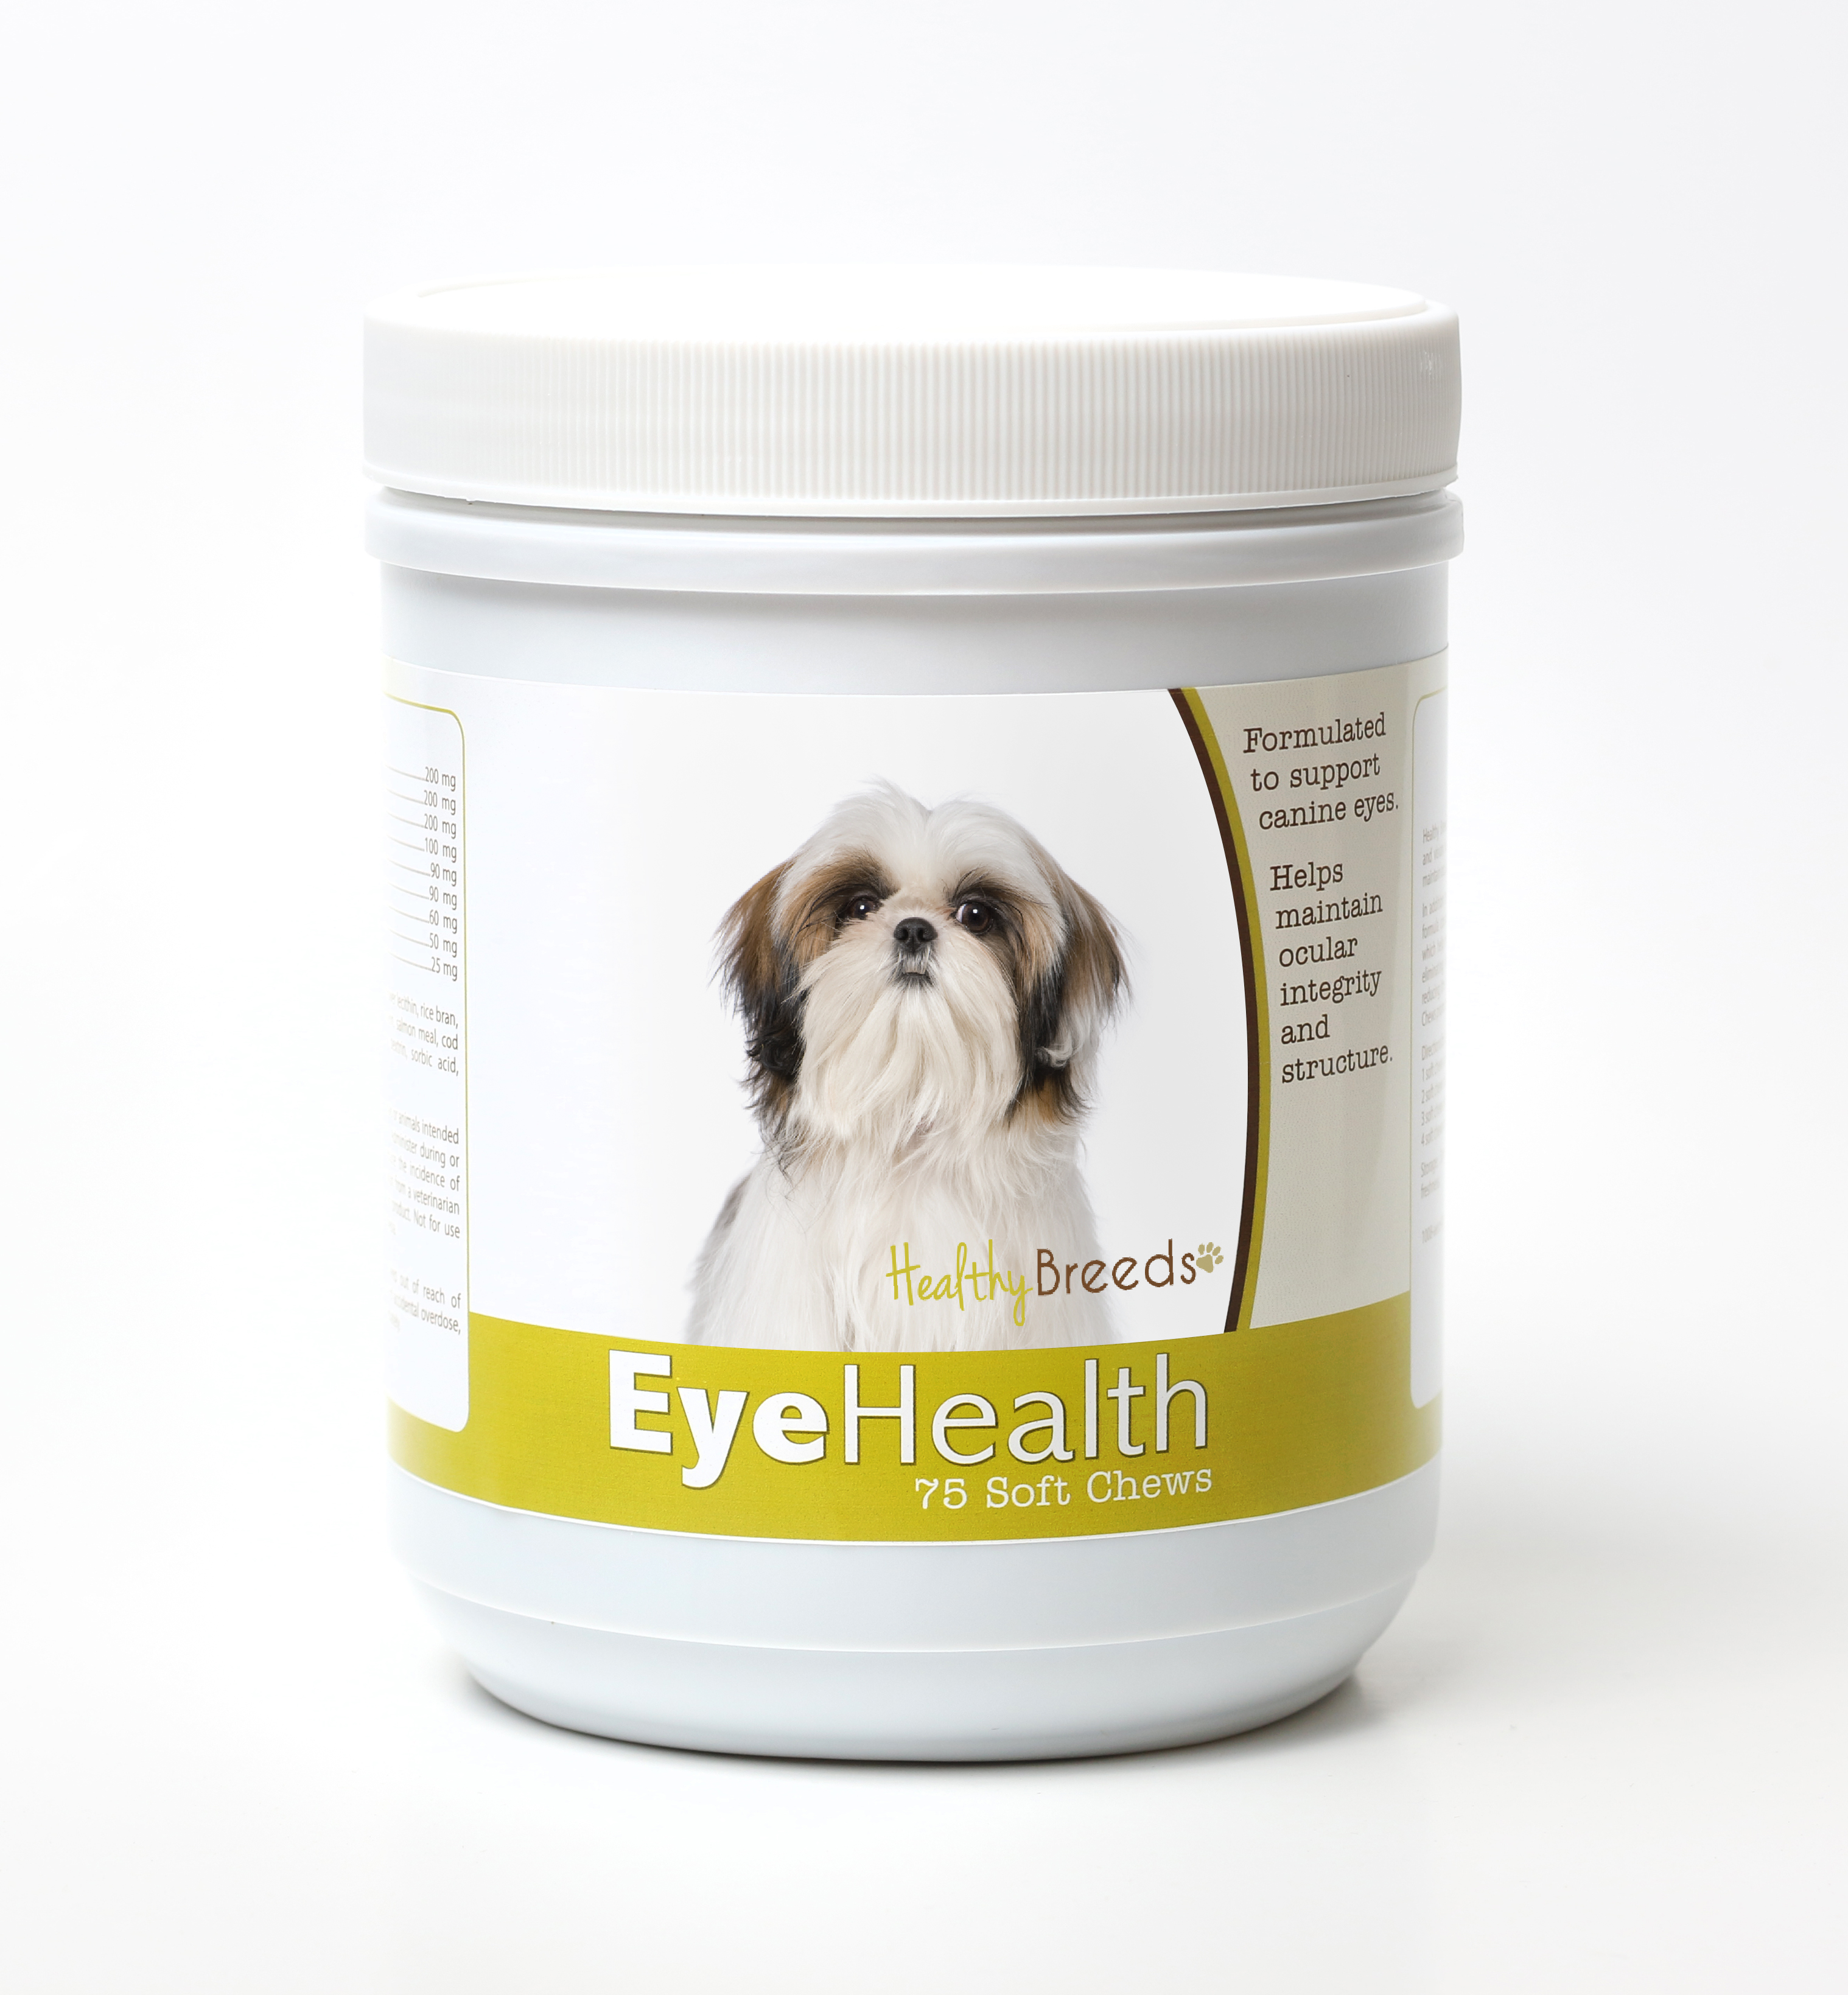 Healthy Breeds Dog Eye Health Support Soft Chews for Shih Tzu 75 Count